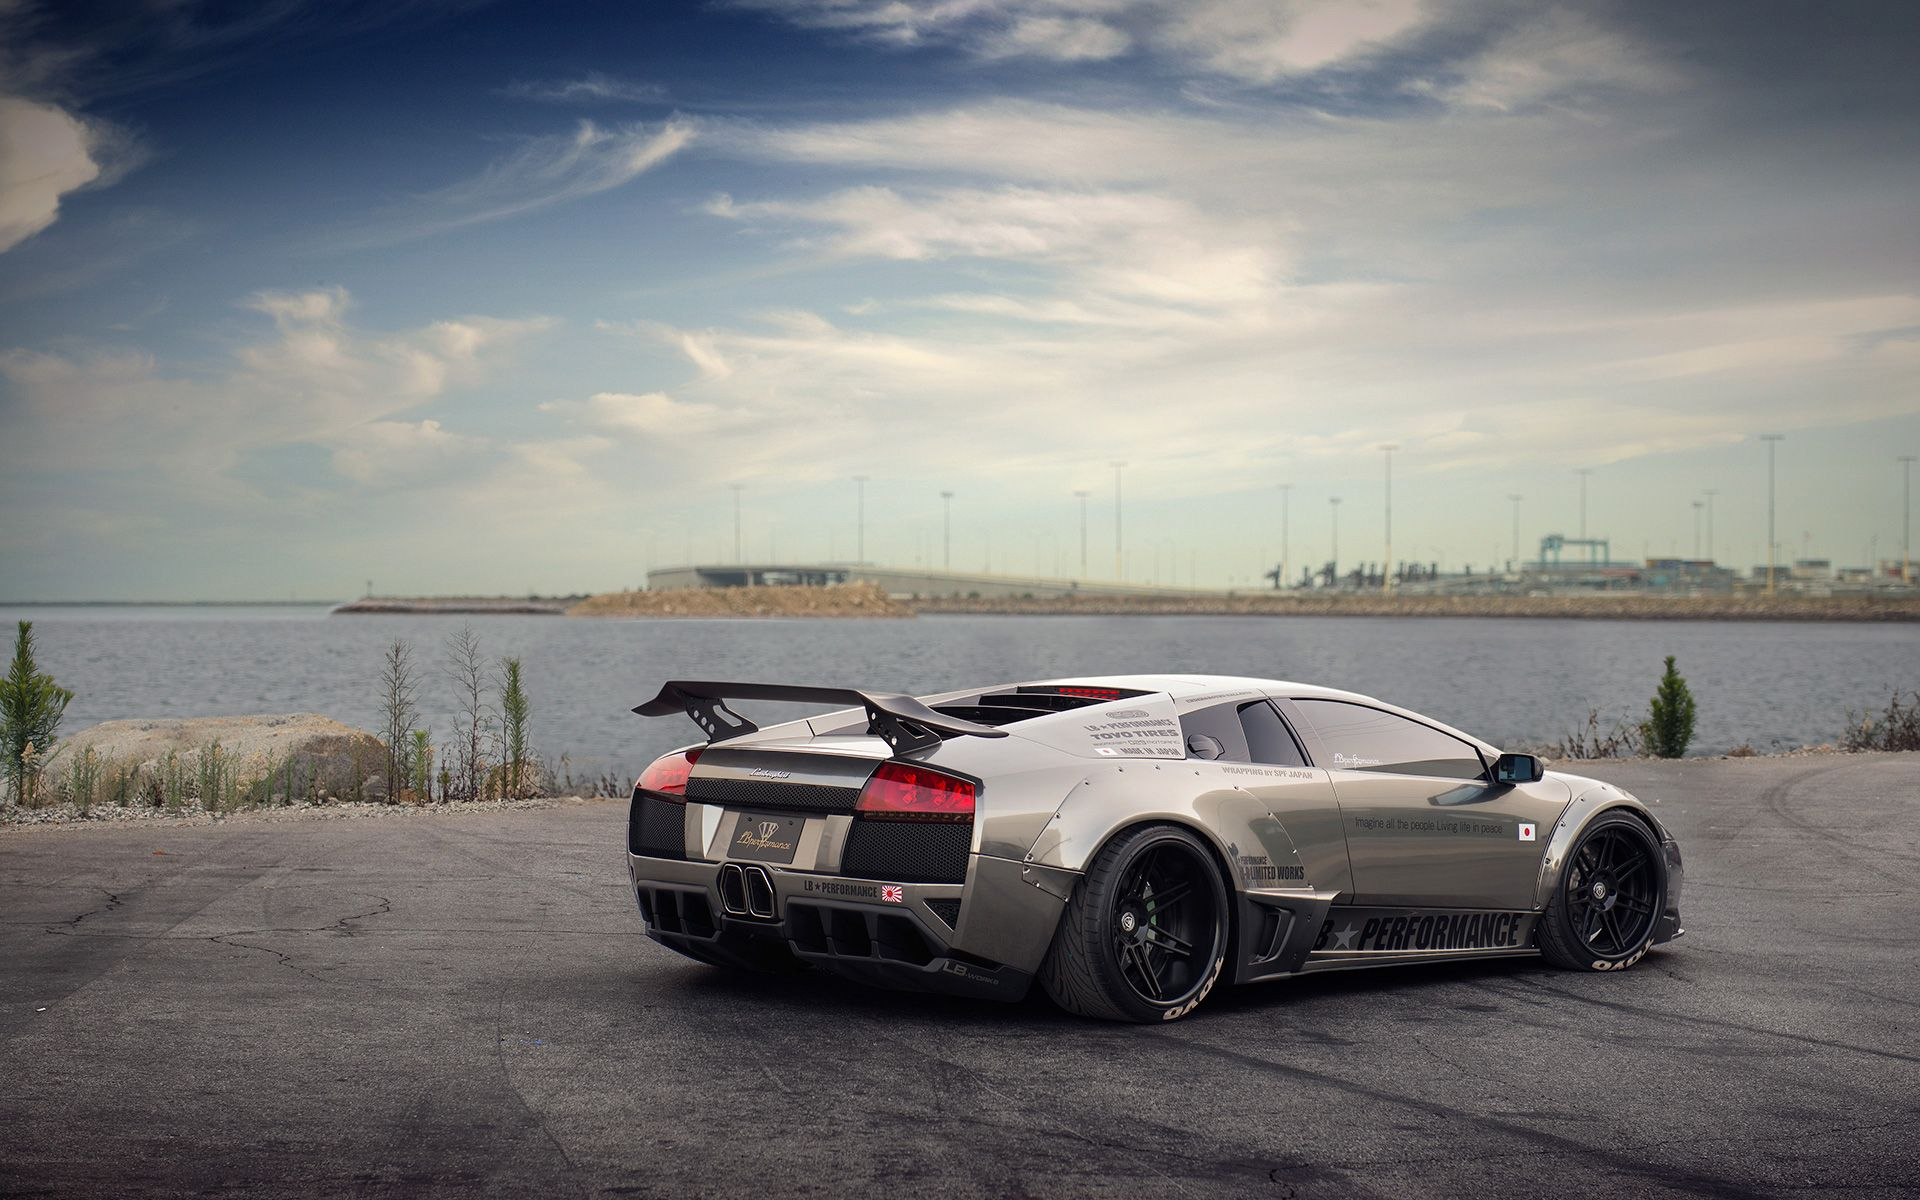 Most Inspiring Wallpaper Mac Lamborghini - 875e14c9391842e3b45ccd48c3710bb7  2018_711797.jpg